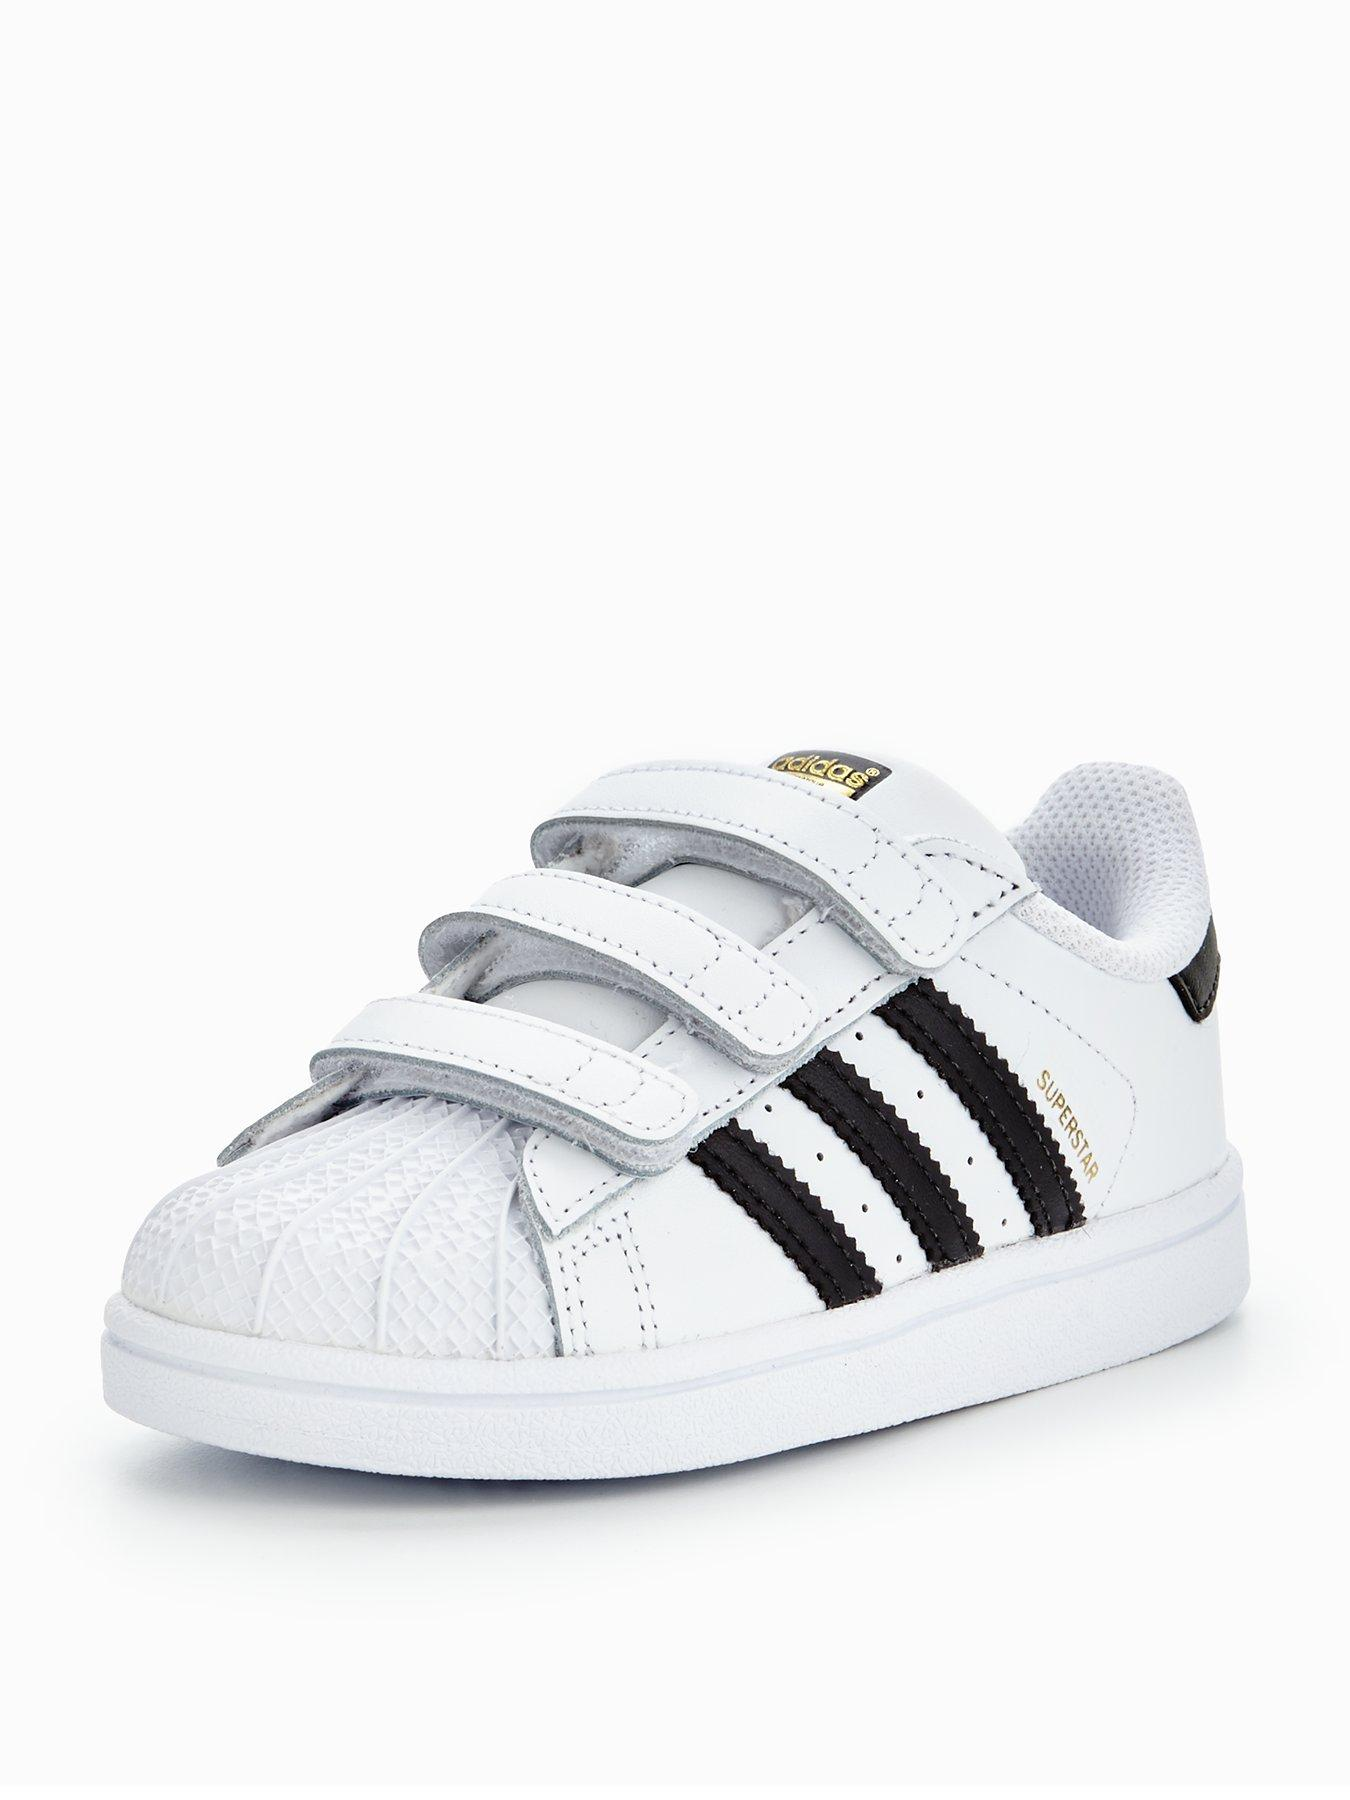 adidas babys trainers